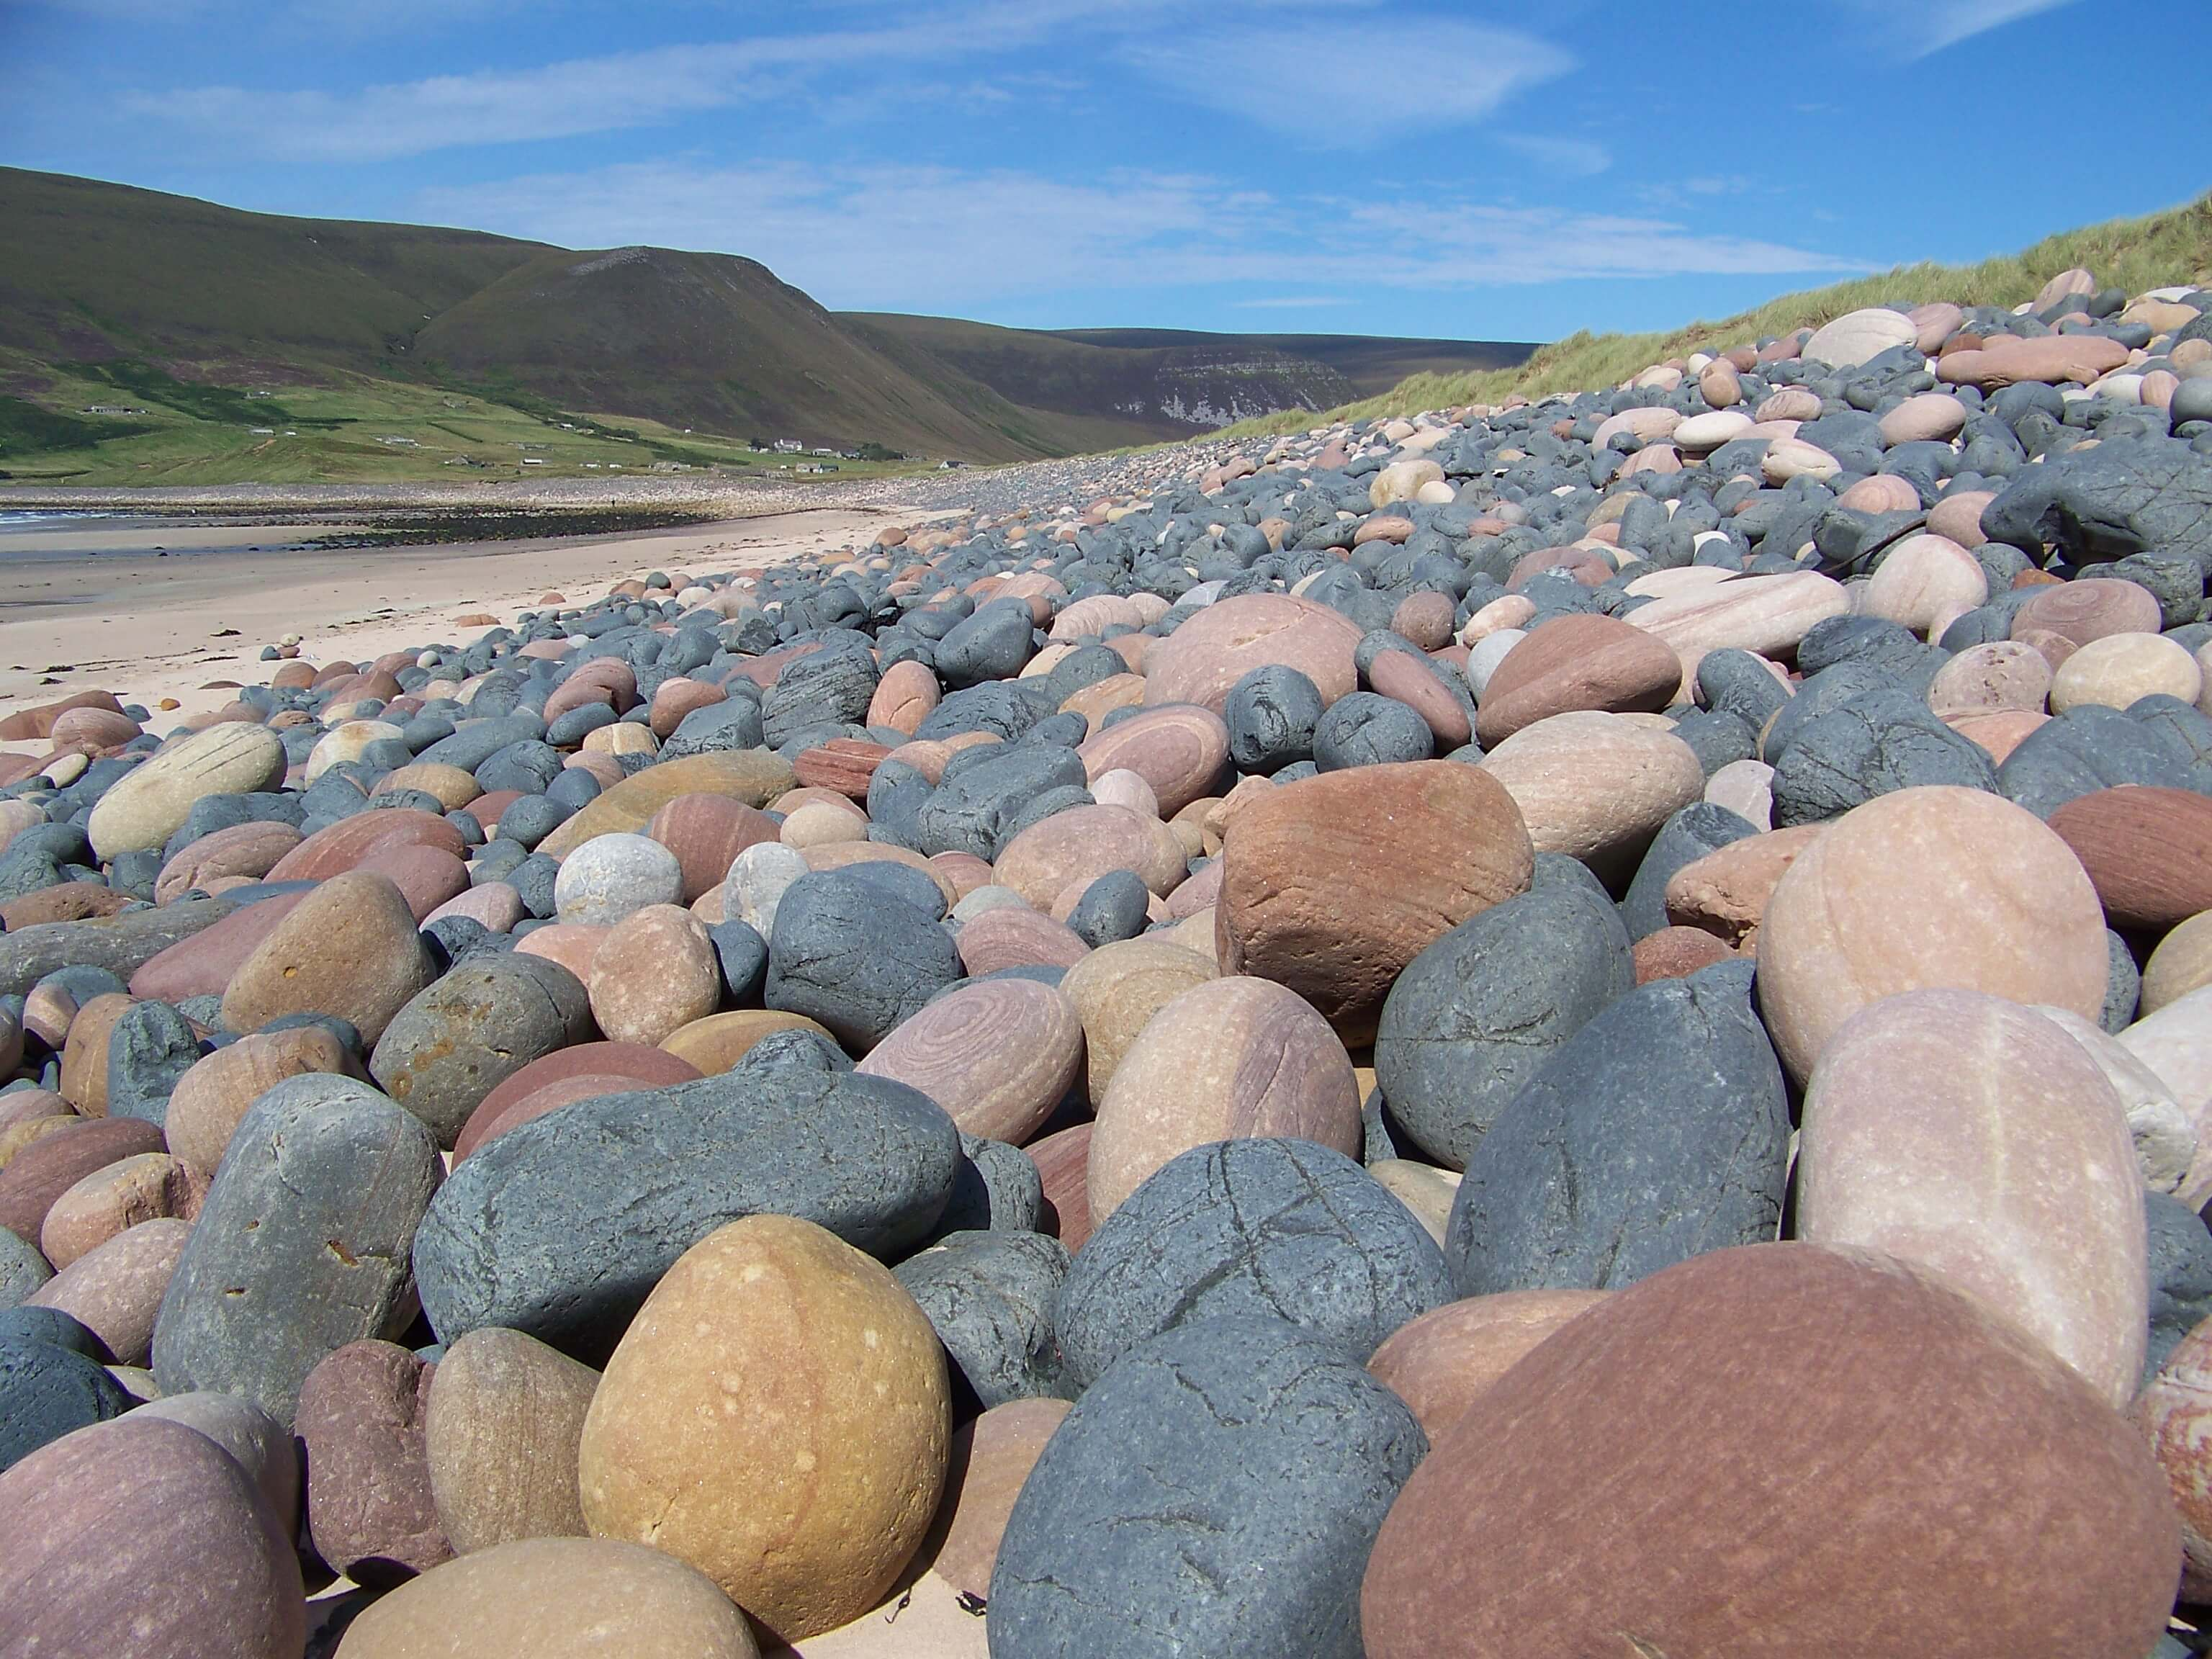 Rackwick Beach, island of Hoy, Orkney Islands, Scotland